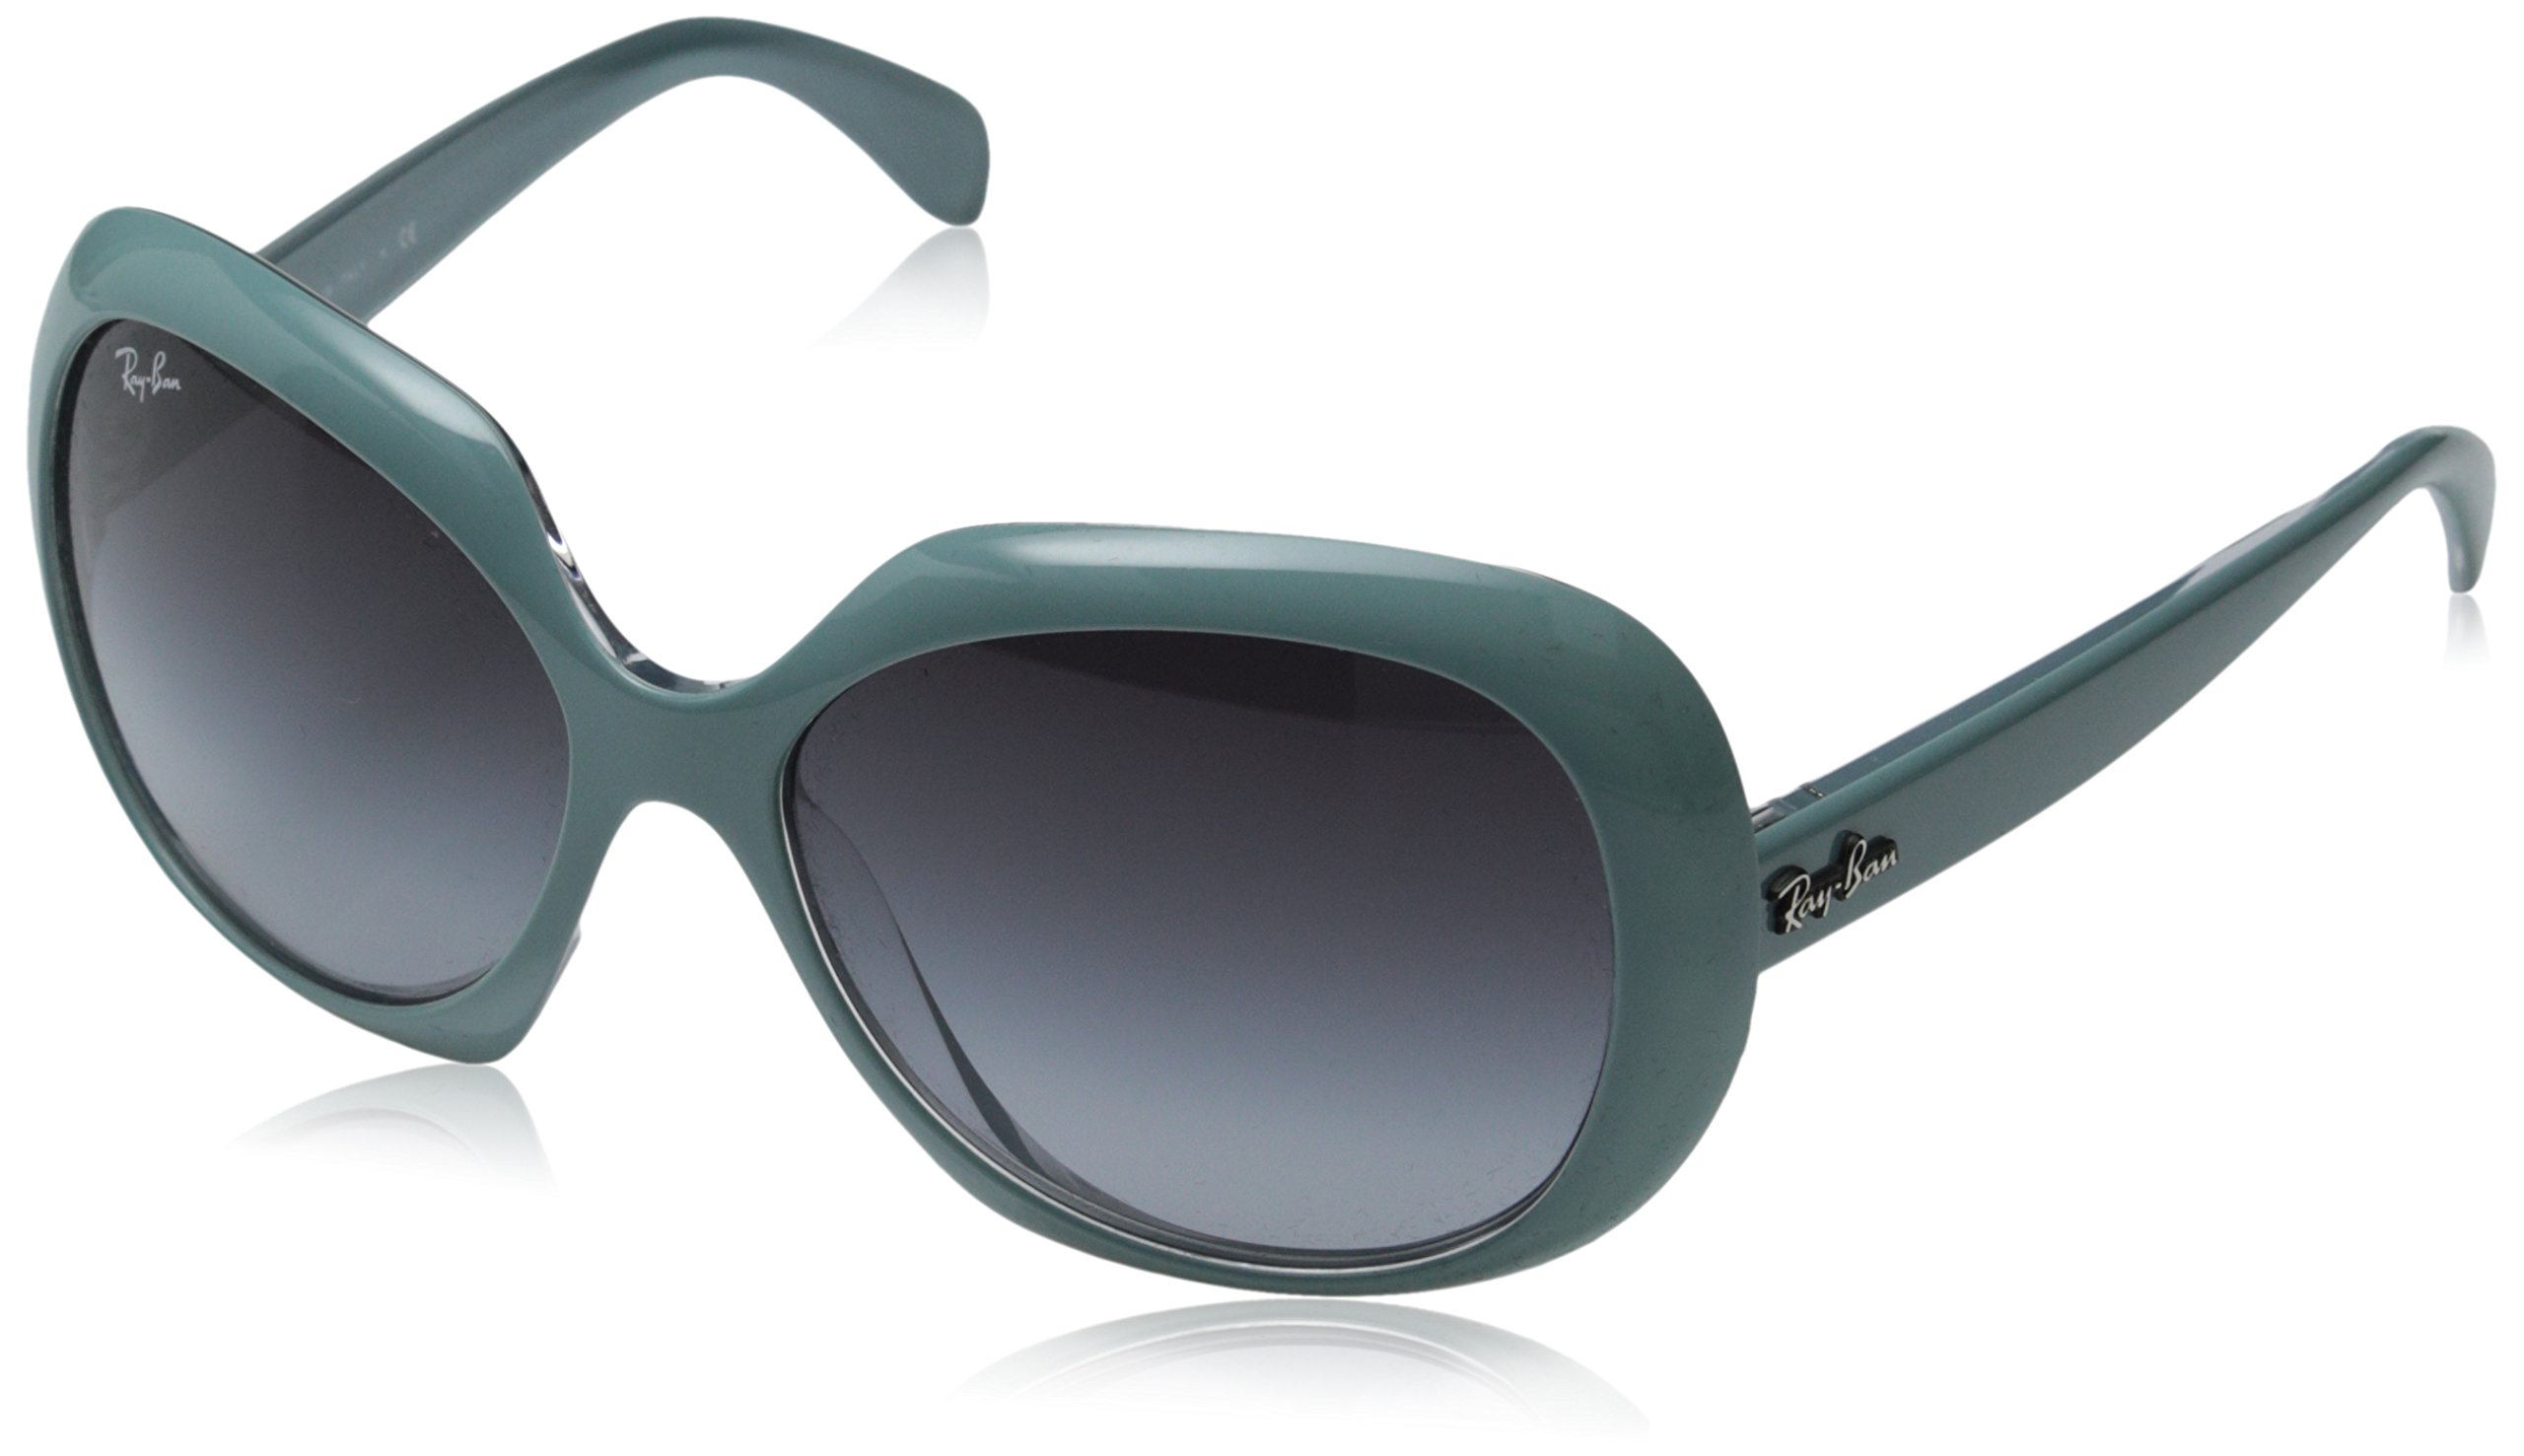 Ray-Ban RB4208-61048G Sunglasses Green Trasp/Grey Gradient 55mm